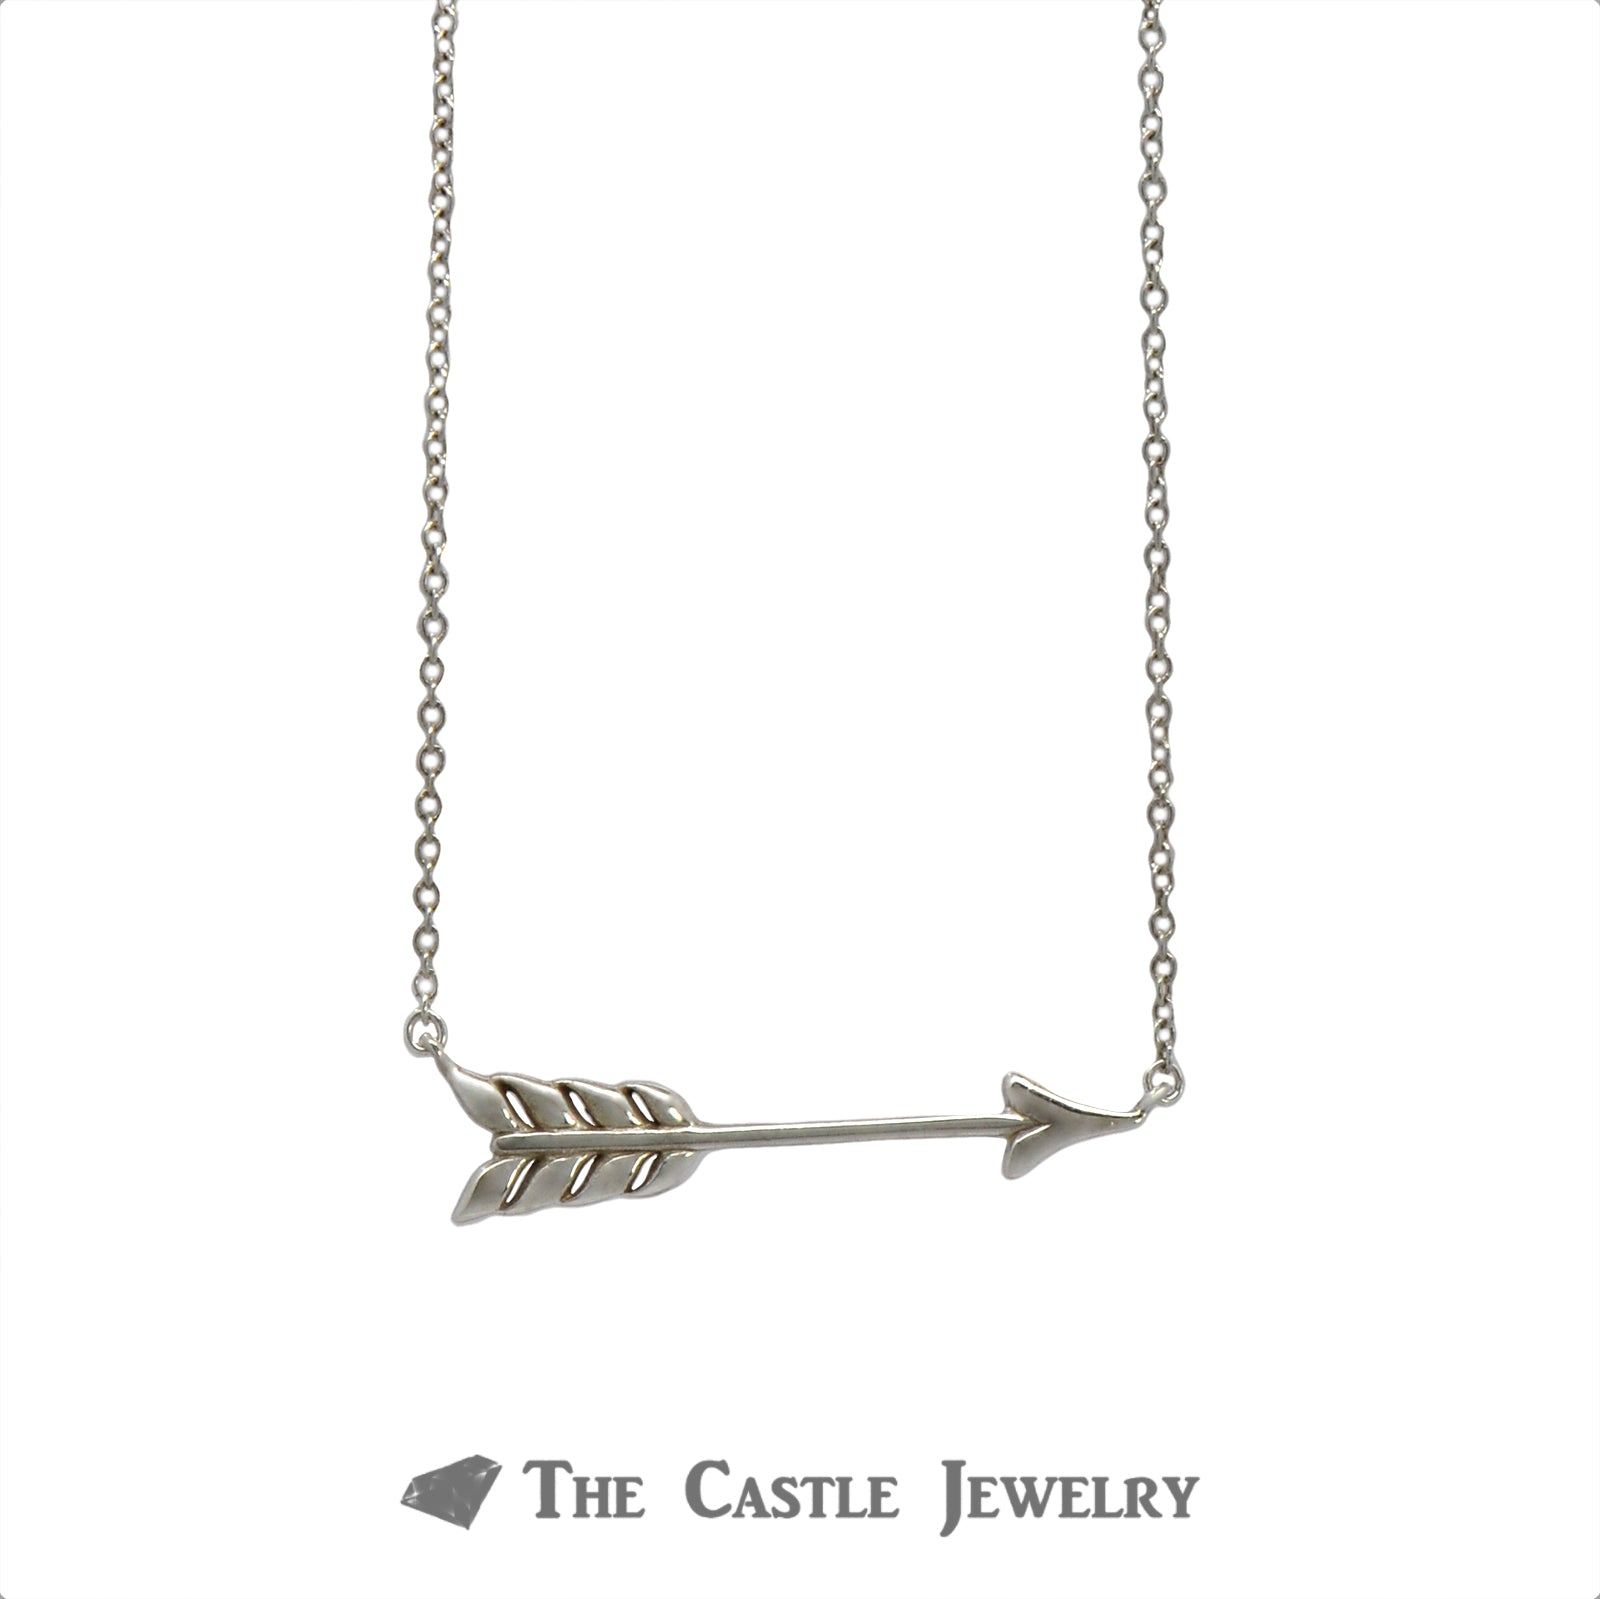 Tiffany & Co. Designer Necklace with Arrow Pendant Crafted in Sterling Silver-1